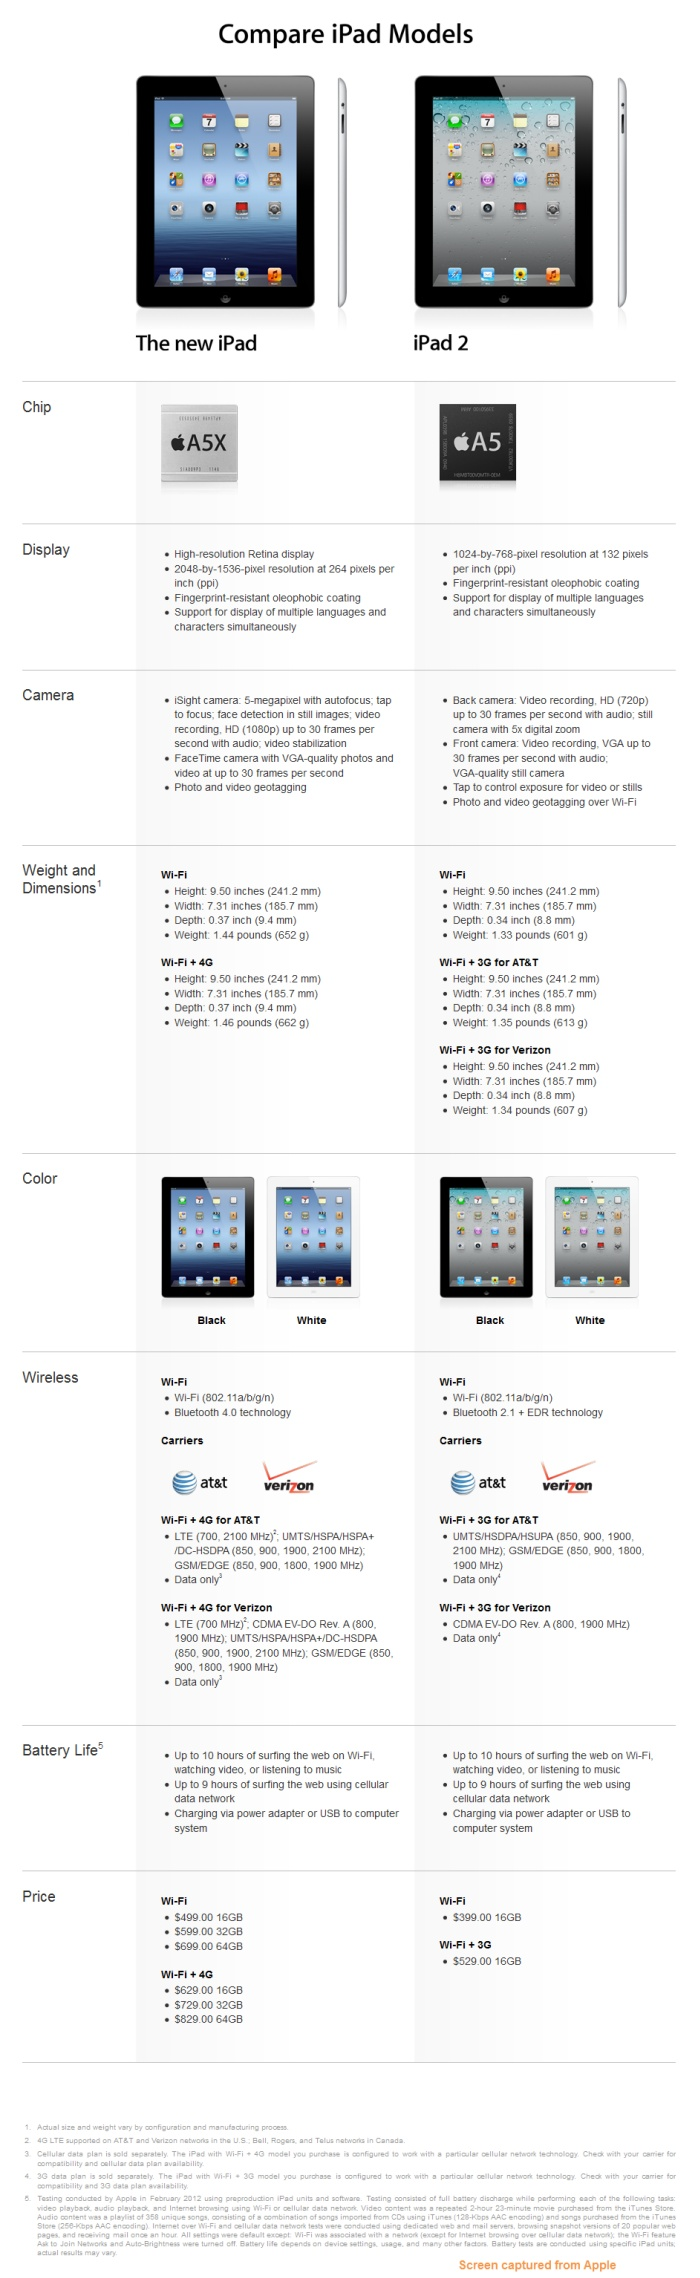 The Ipad Compare Models